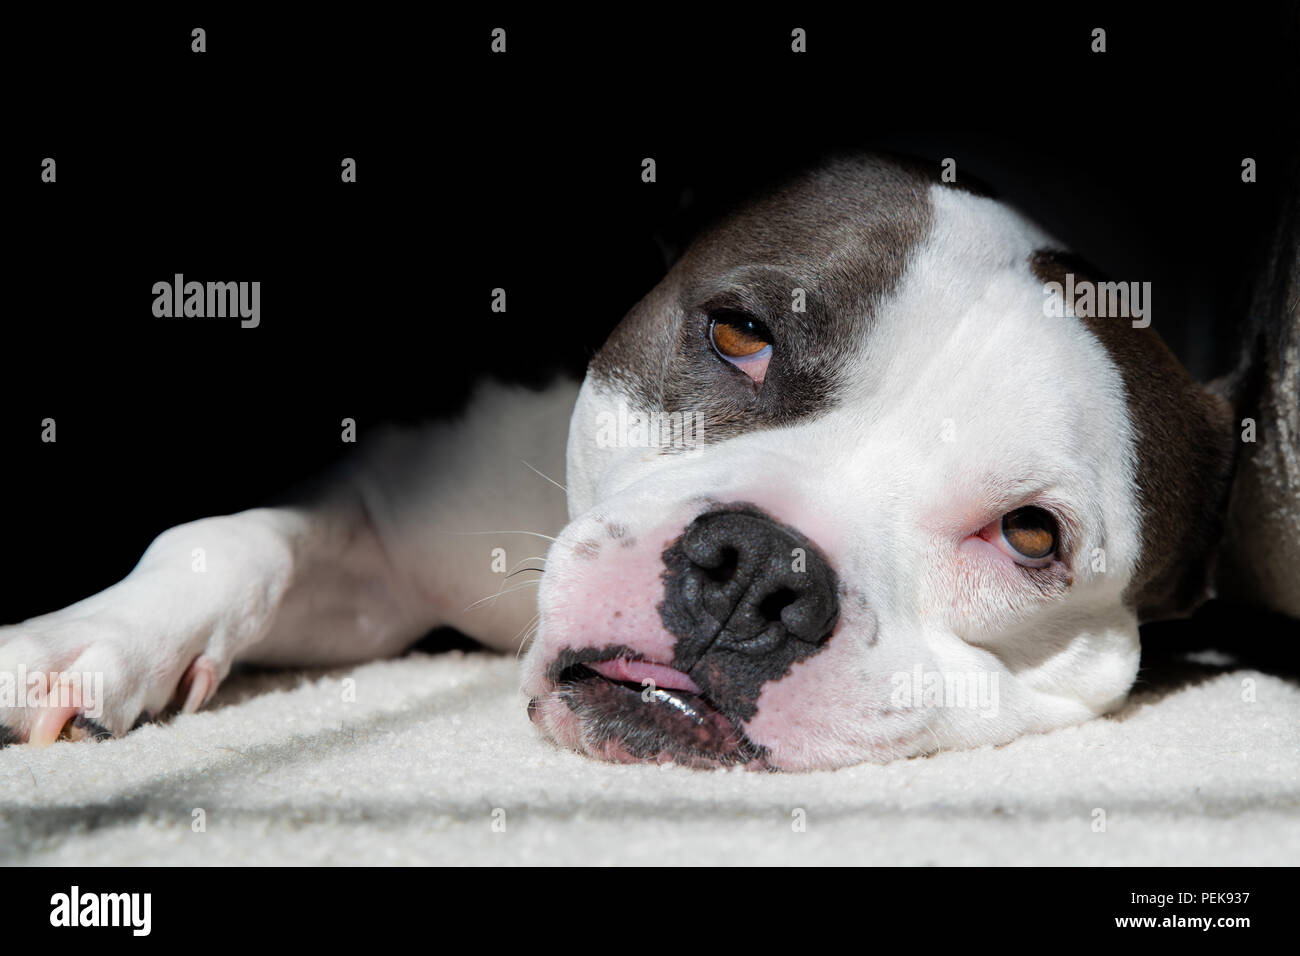 A Staffordshire Terrier Pit Bull Dog Takes a long rest in the sun - Stock Image